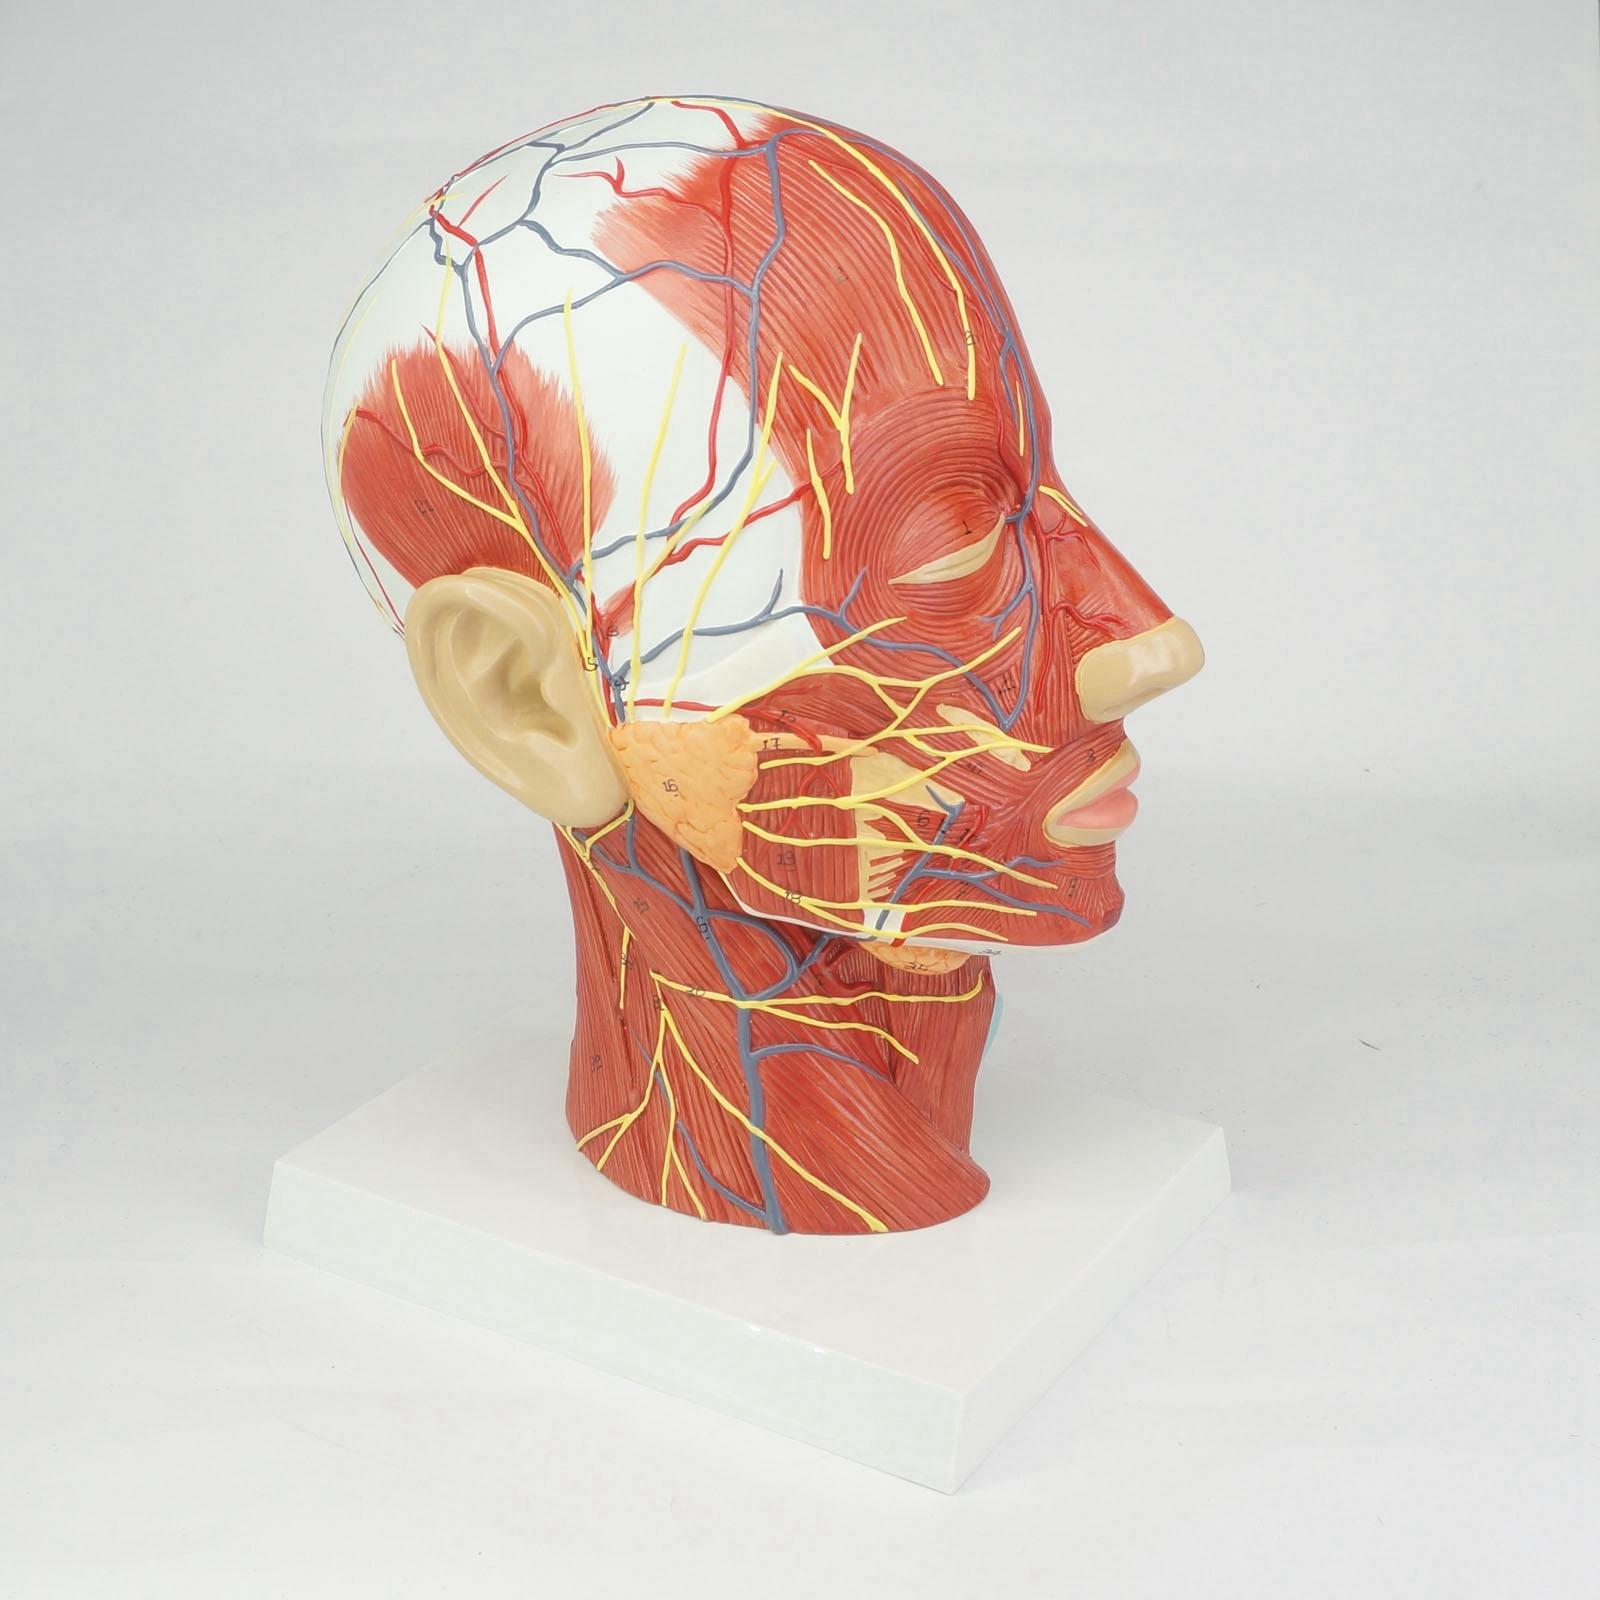 Median Section of Human Head & Neck Anatomical Model Medical Skeleton Anatomy Natural Life Size median section of head model anatomical head model